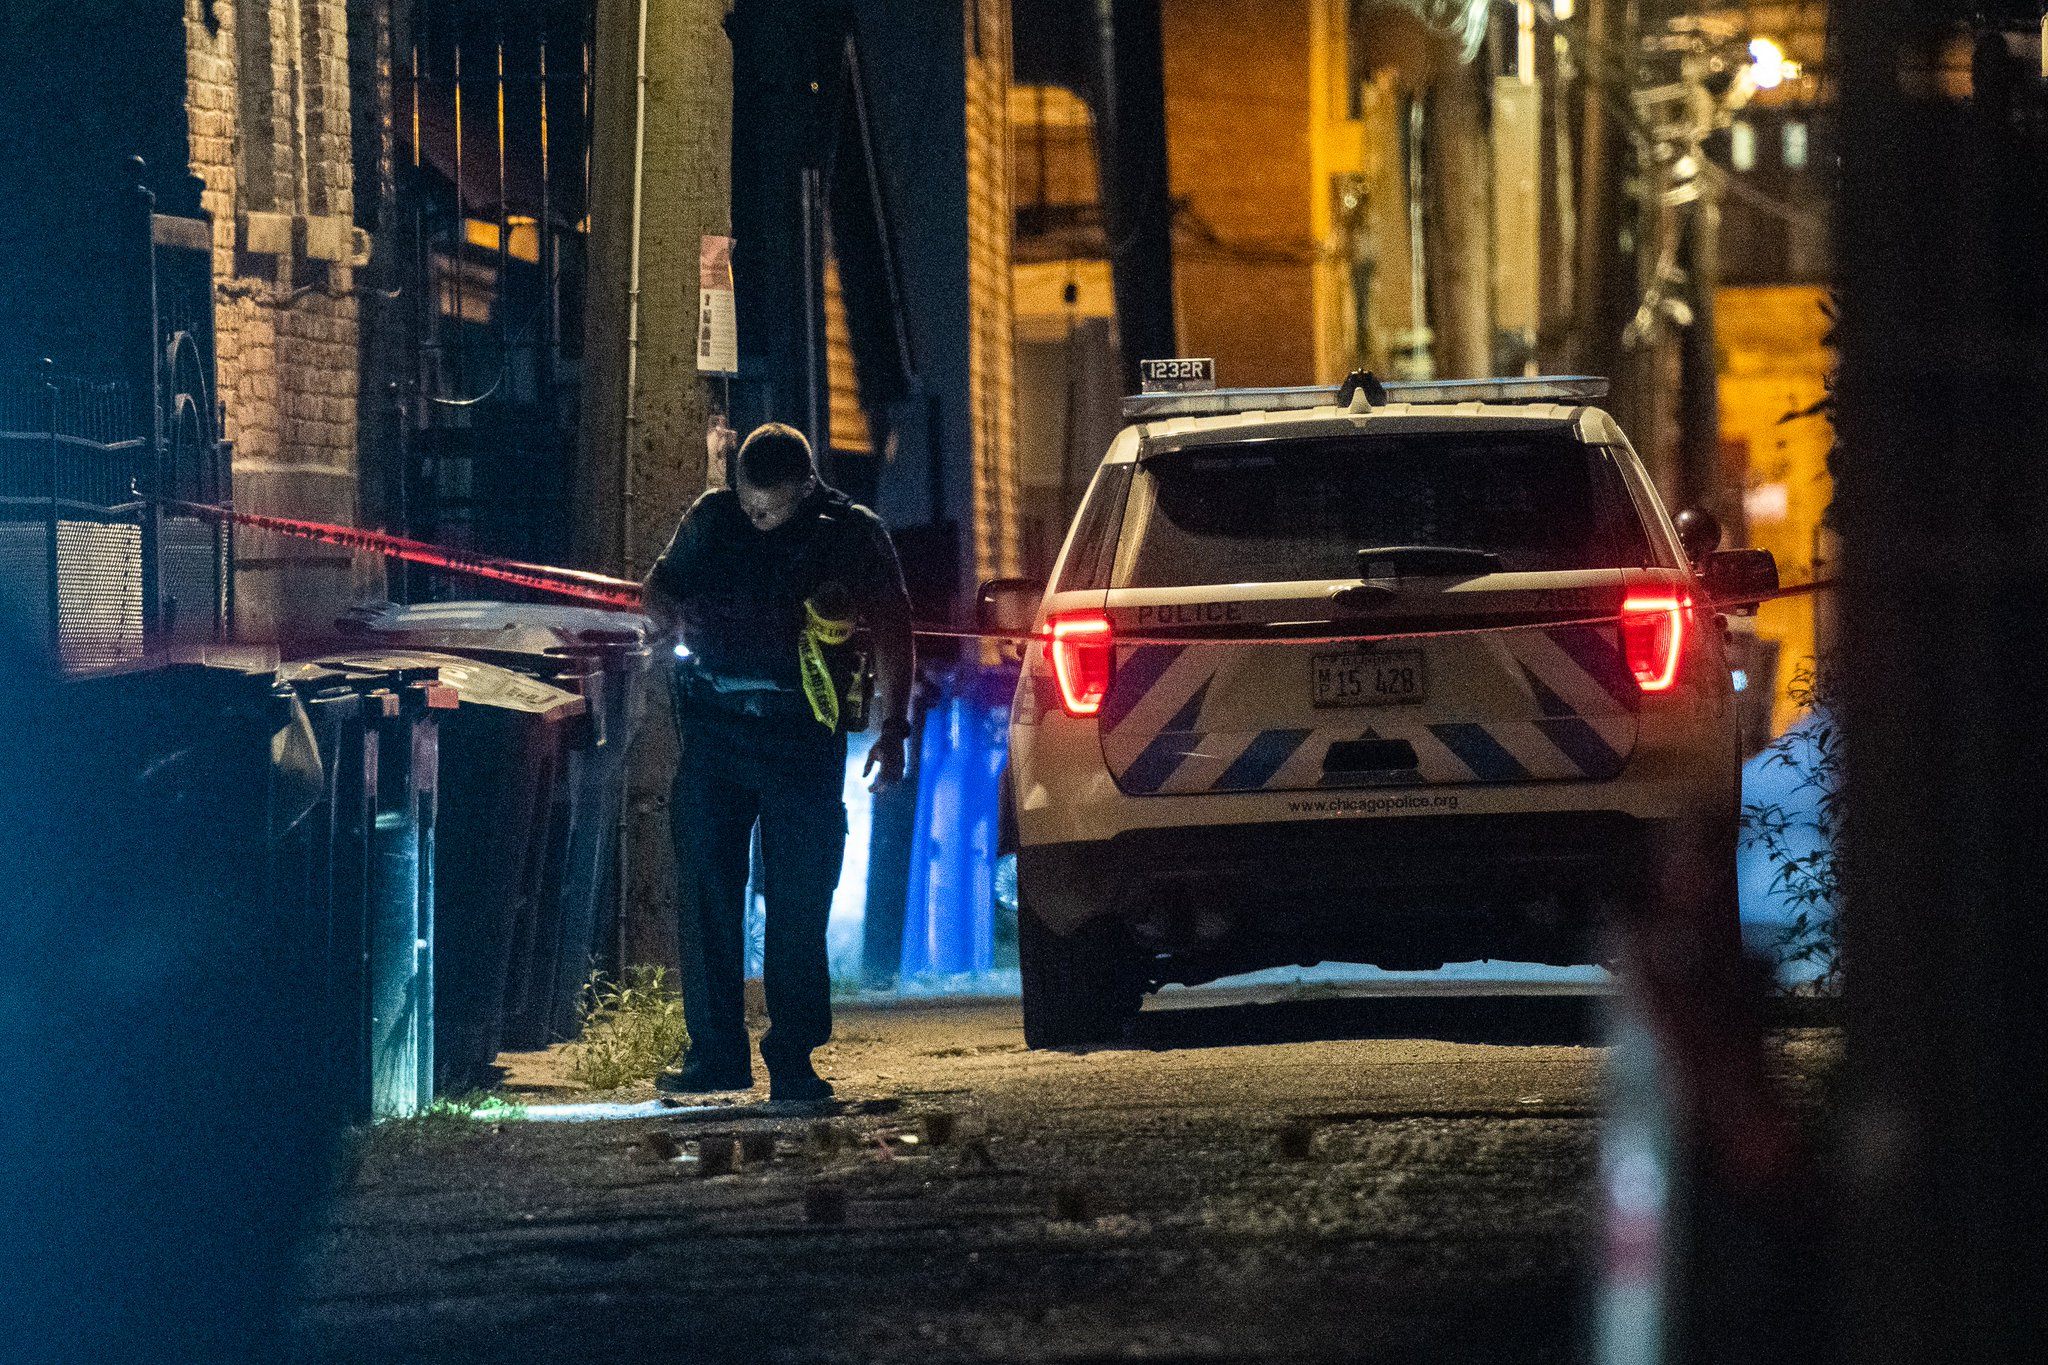 Chicago police investigate the scene where a man was found shot to death in an alley in the 1600 block of South Loomis Street.